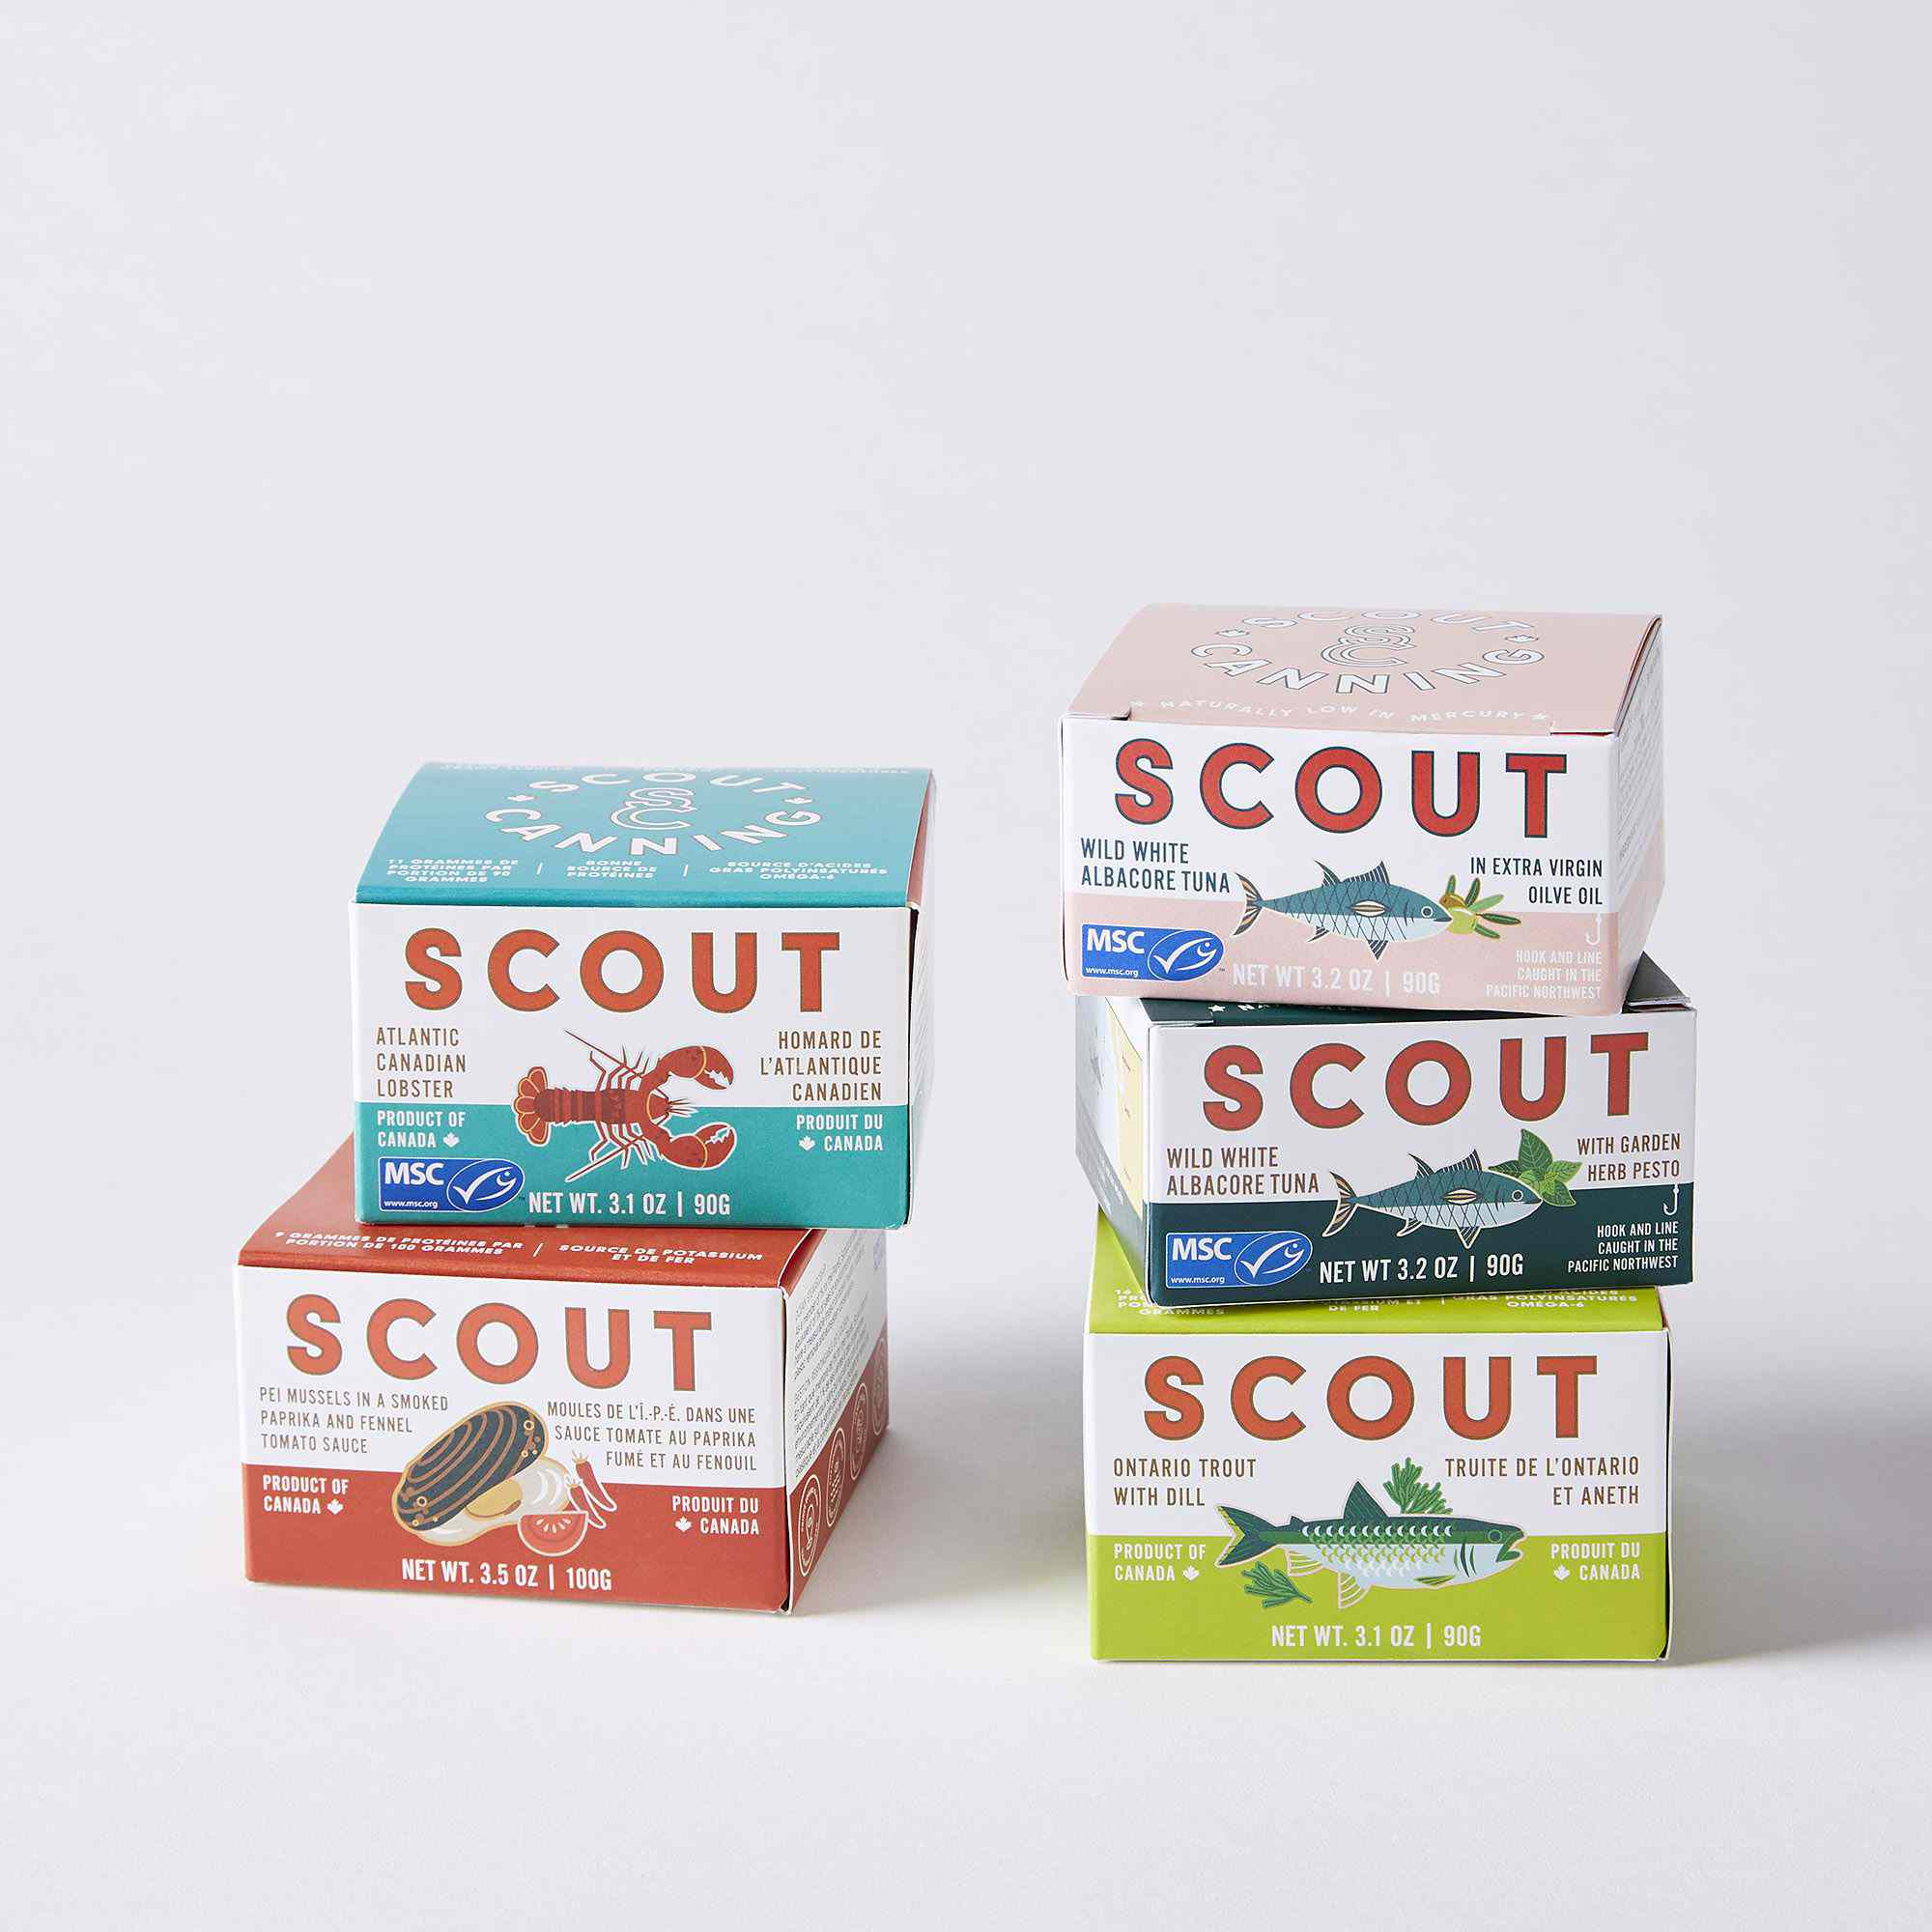 Scout-Canning-Sustainably-Harvested-Canned-Seafood